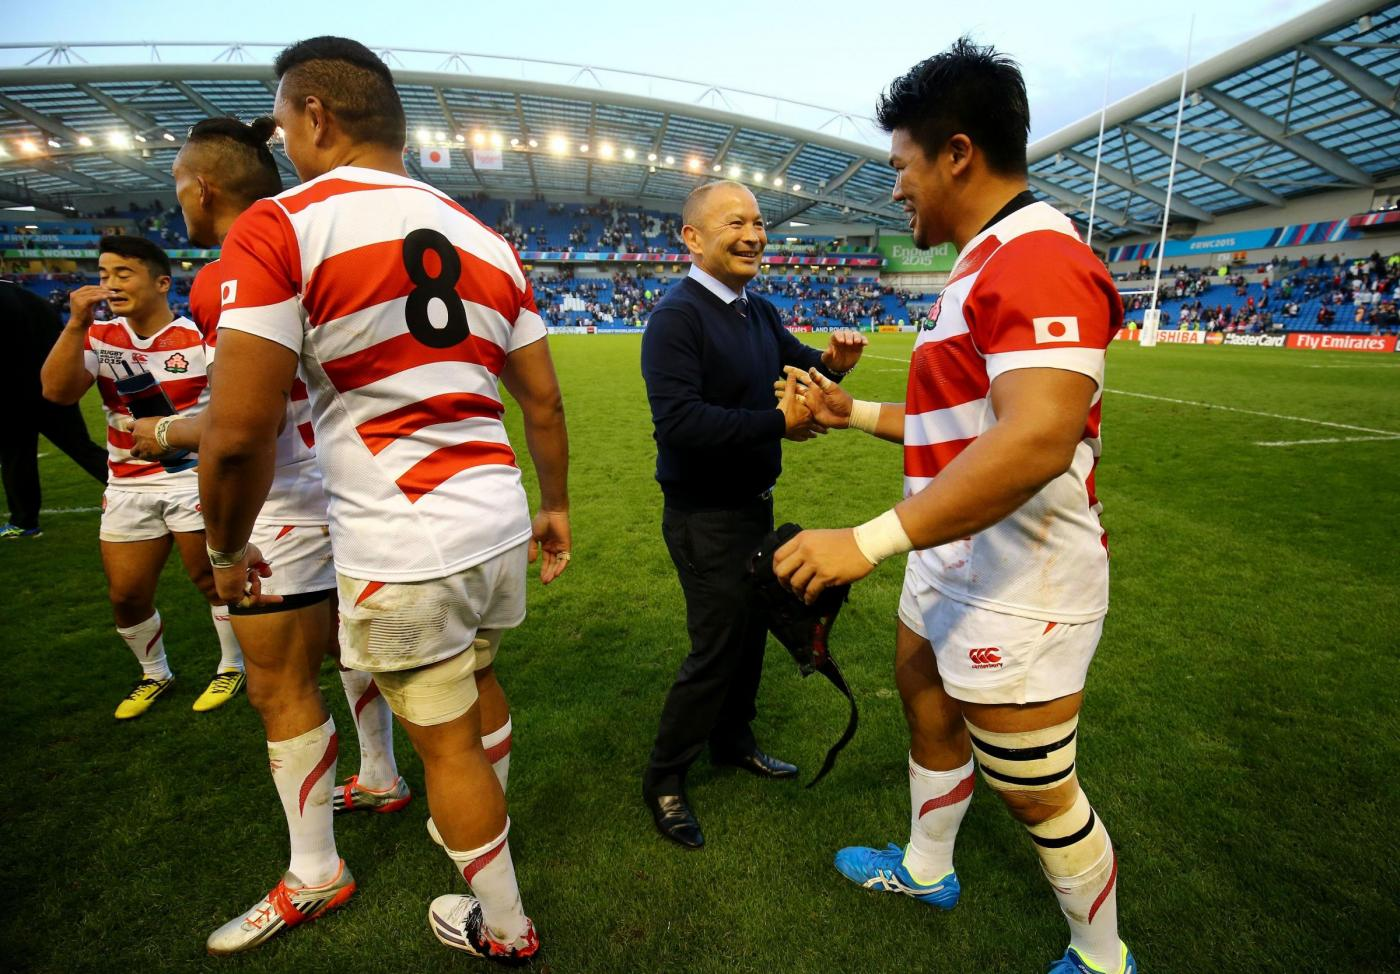 Japan's Coach Eddie Jones congratulates his team following victory over South Africa during the Rugby World Cup match at the Brighton Community Stadium, Brighton. PRESS ASSOCIATION Photo. Picture date: Saturday September 19, 2015. See PA story RUGBYU South Africa. Photo credit should read: Gareth Fuller/PA Wire. RESTRICTIONS: Editorial use only. Strictly no commercial use or association without RWCL permission. Still image use only. Use implies acceptance of Section 6 of RWC 2015 T&Cs at: http://bit.ly/1MPElTL Call +44 (0)1158 447447 for further info.